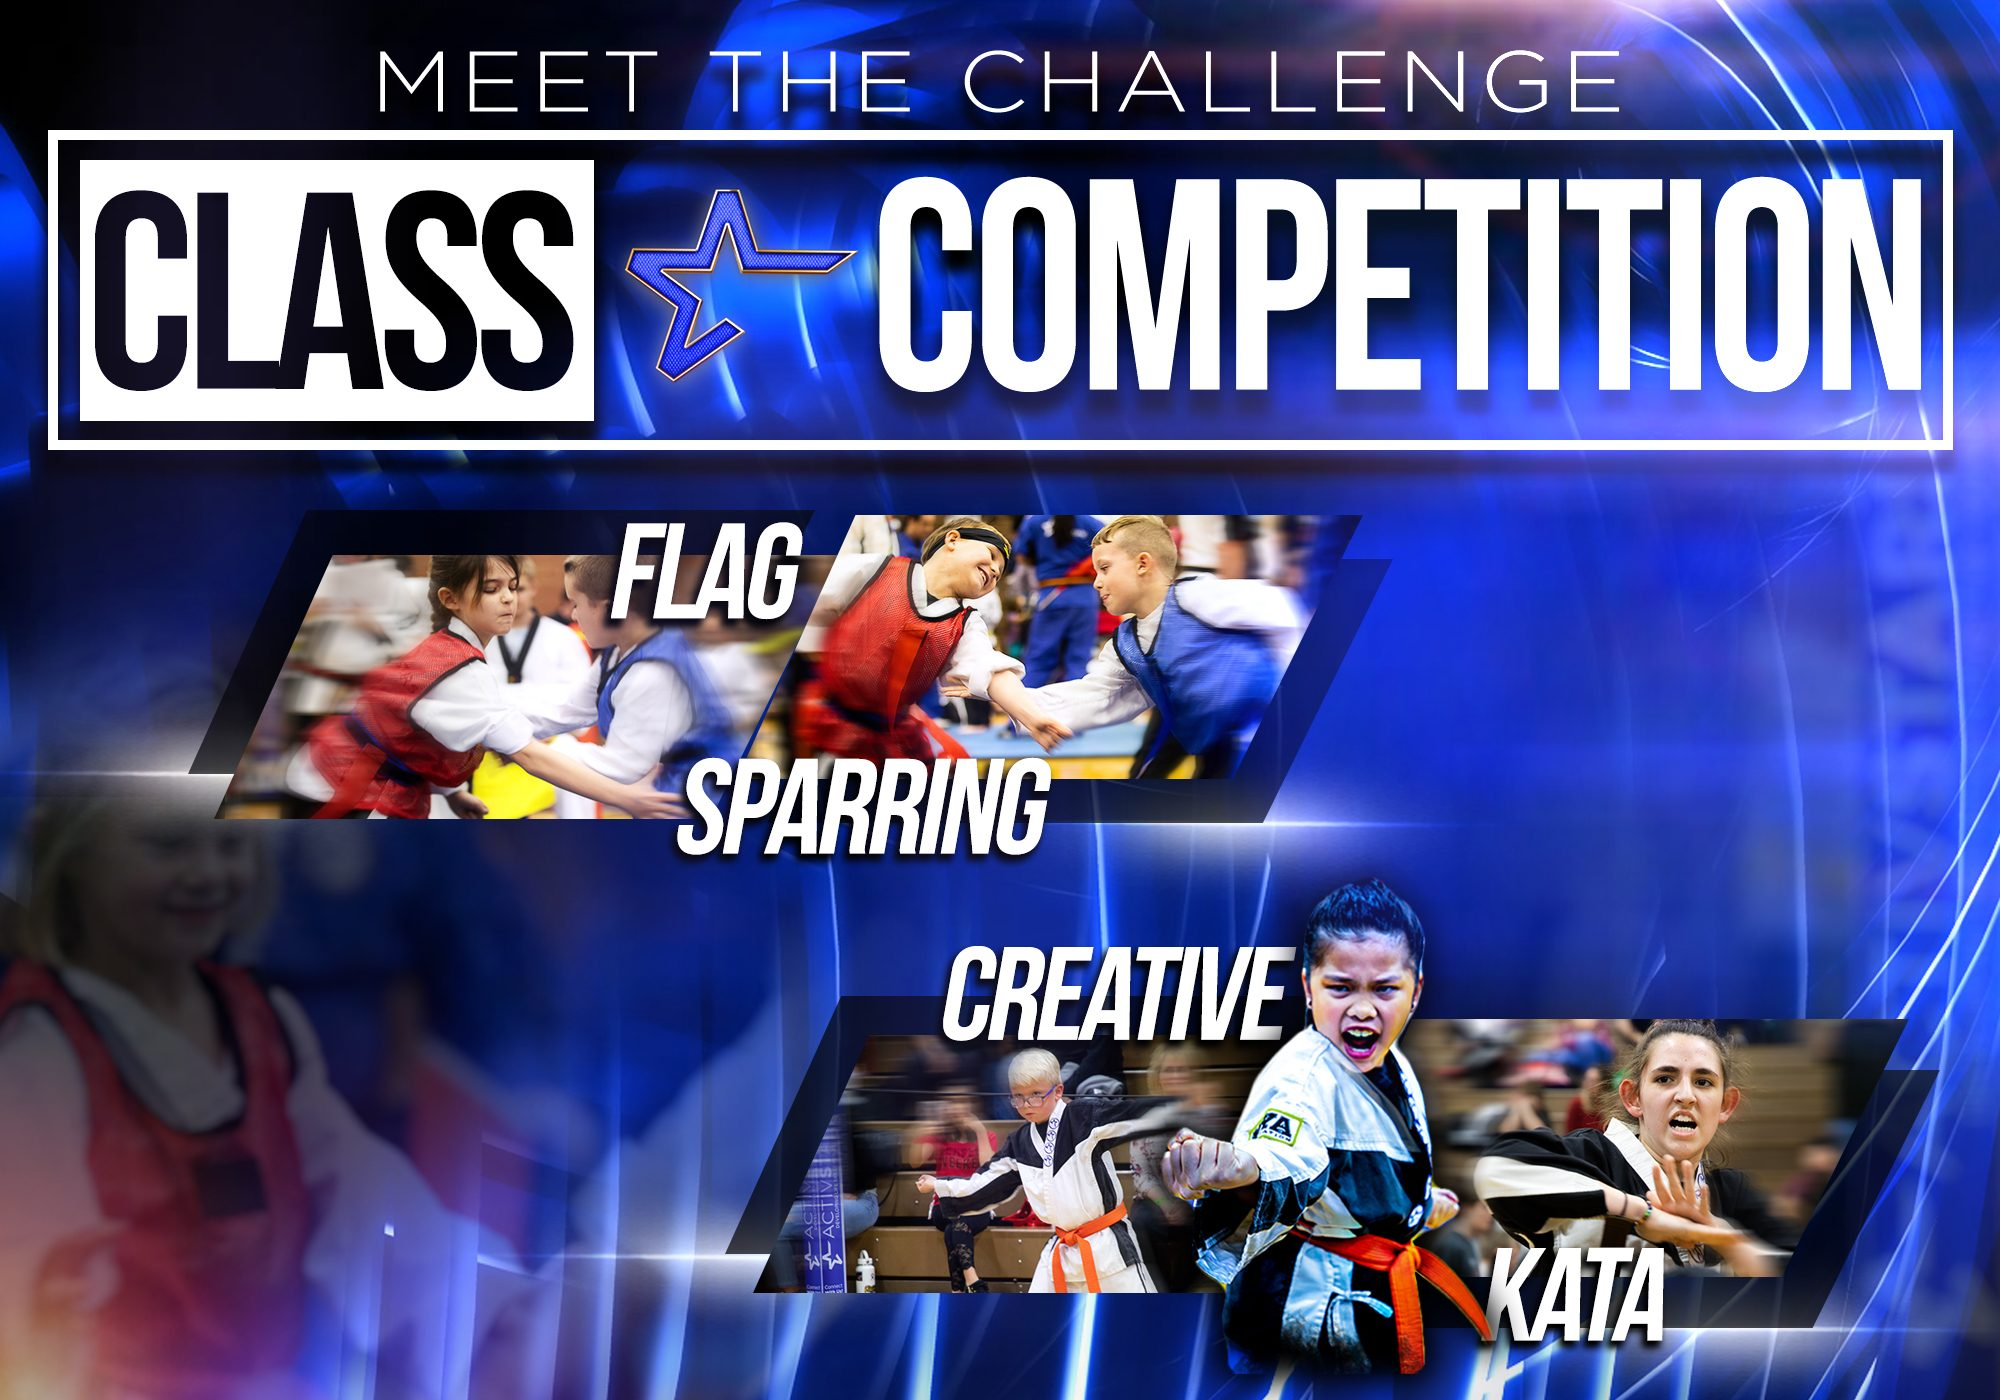 Class-Competition-v2